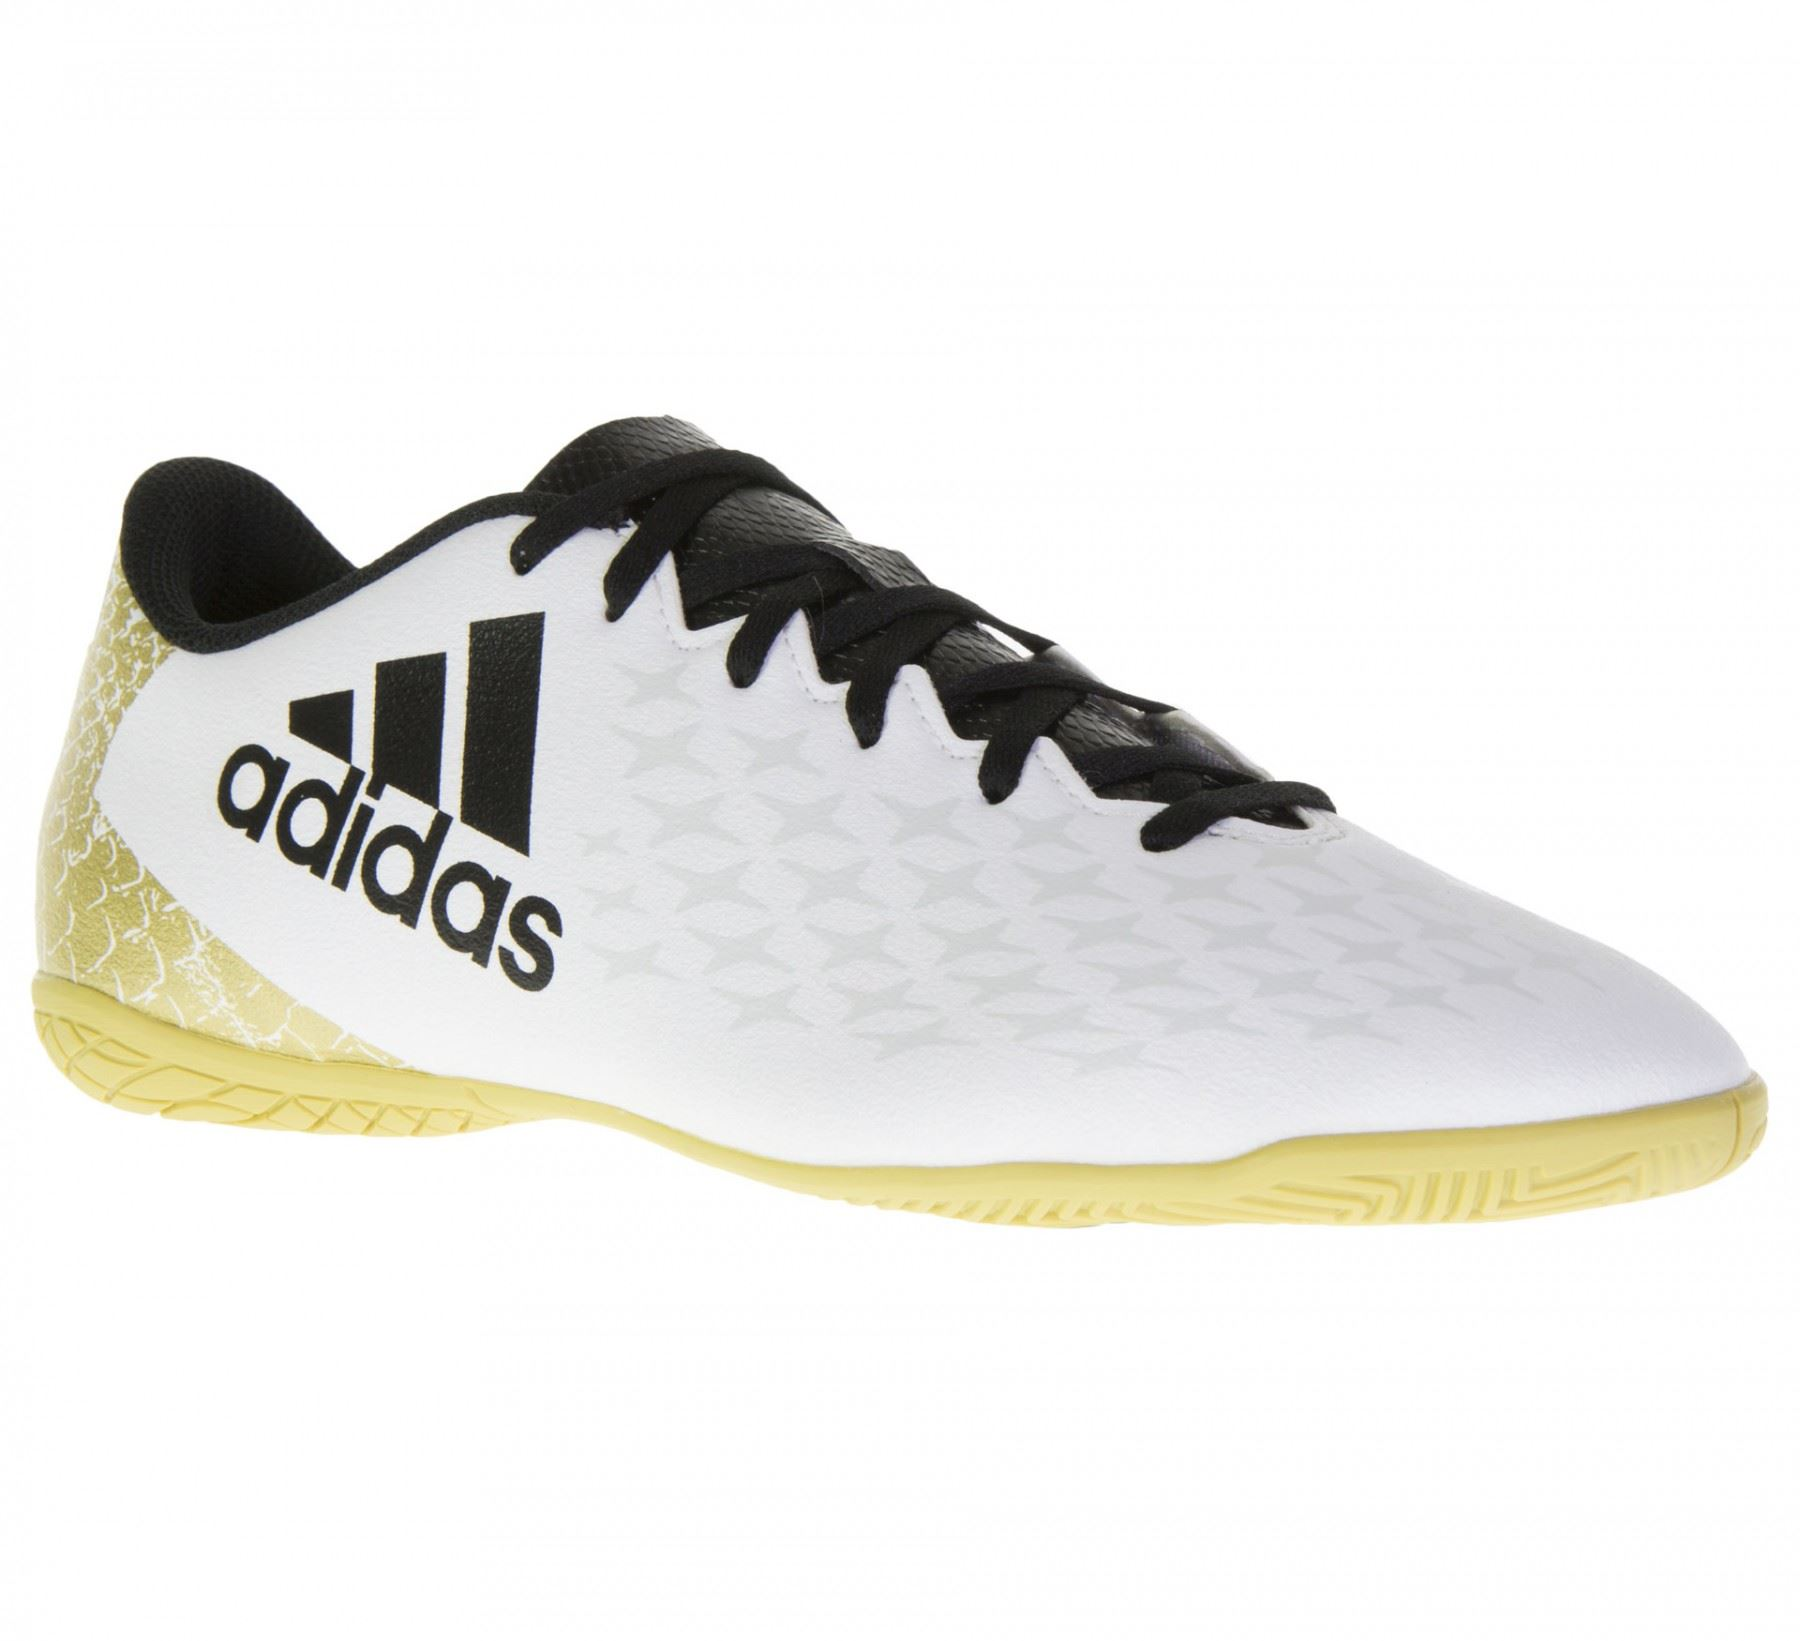 c655a687df9 ... adidas X 16.4 Indoor Football Shoes Mens White Black Gold Futsal Soccer  Trainers ...